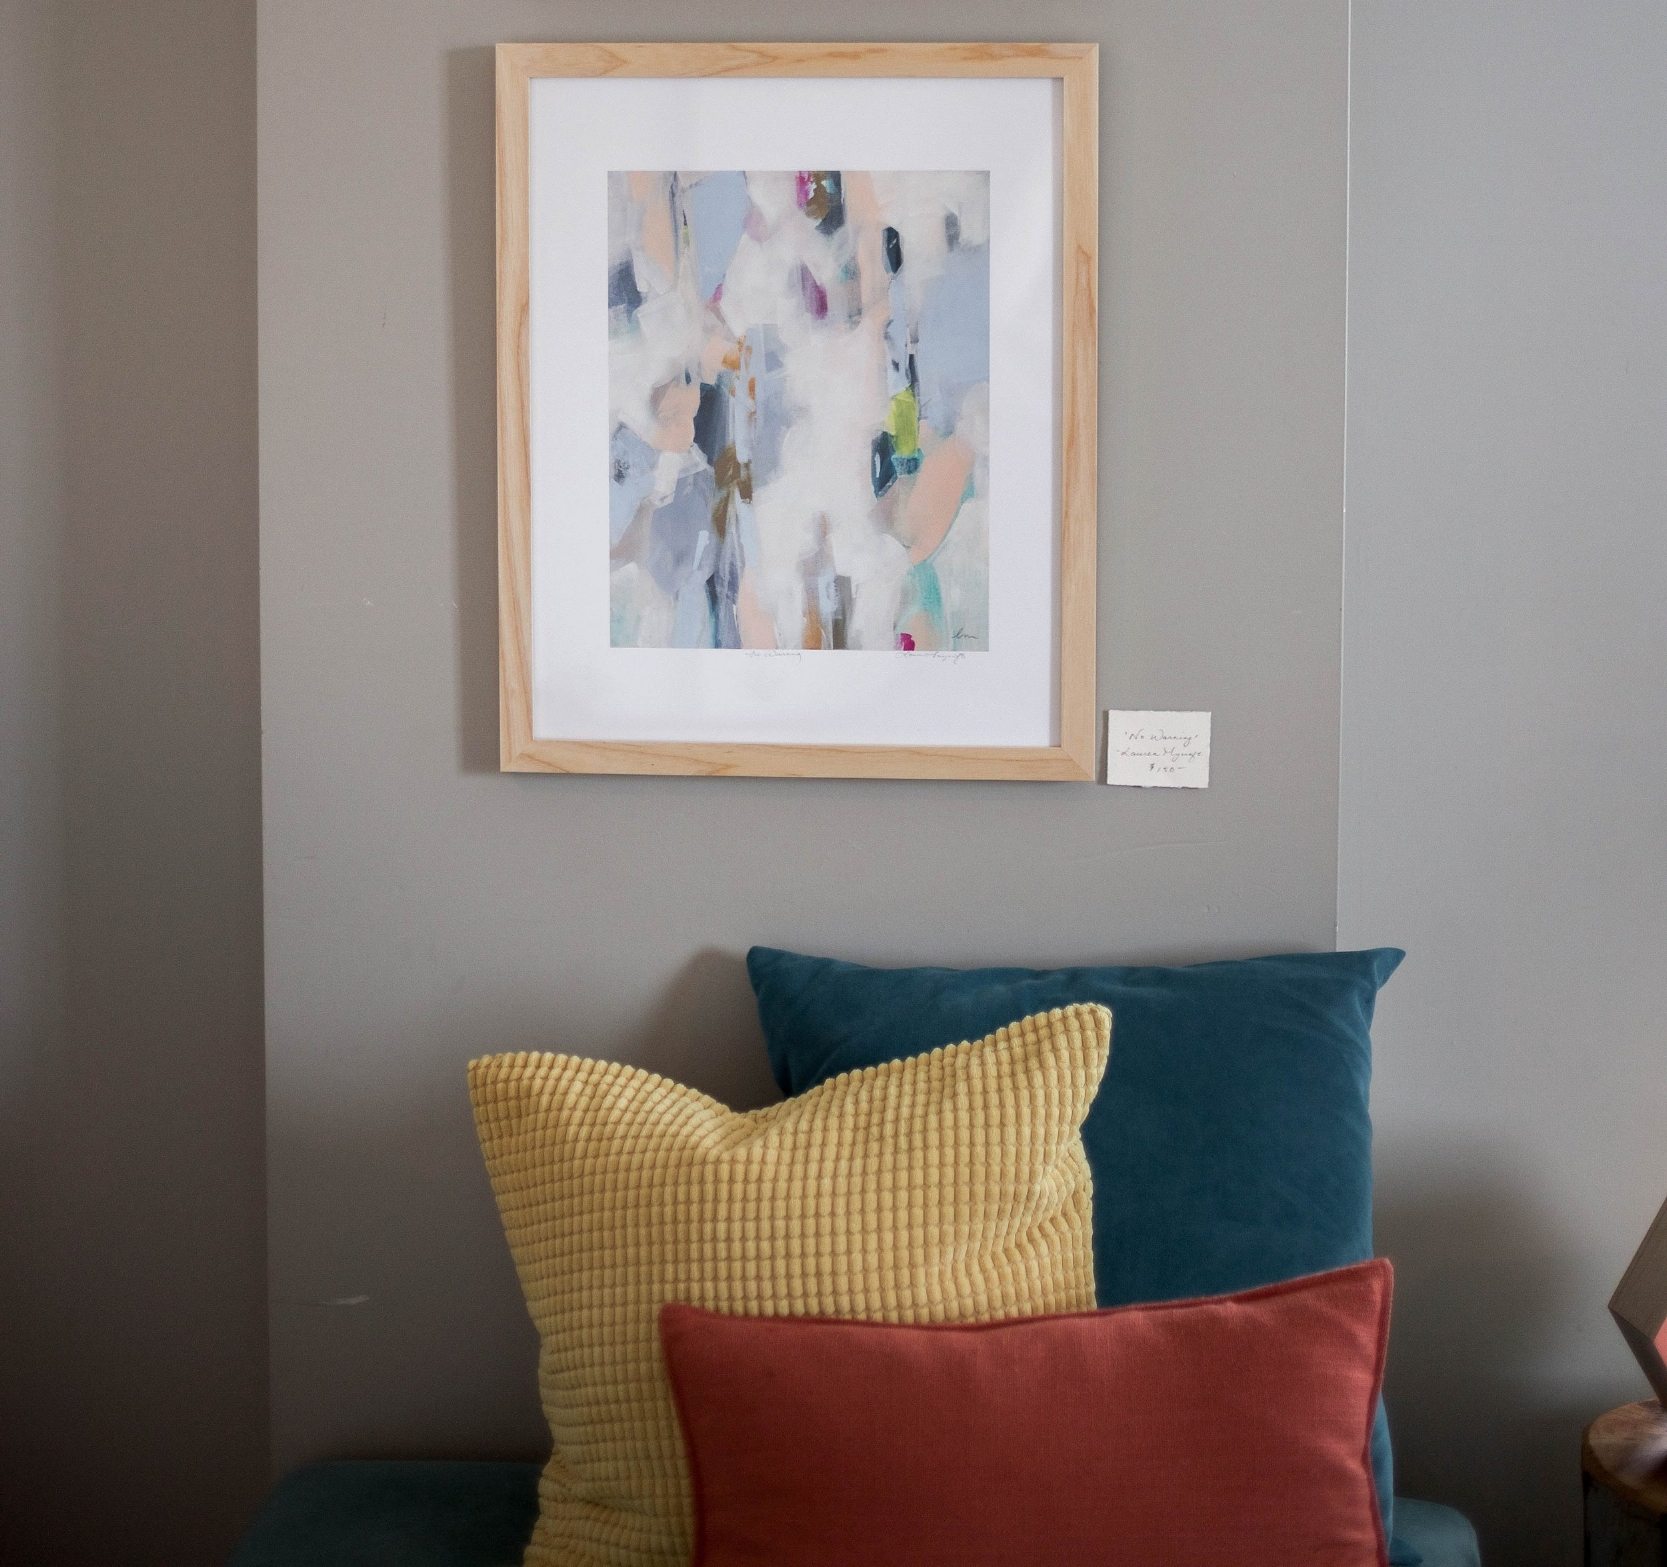 Prints and originals designed by Lauren Mycroft - available at Nourish.